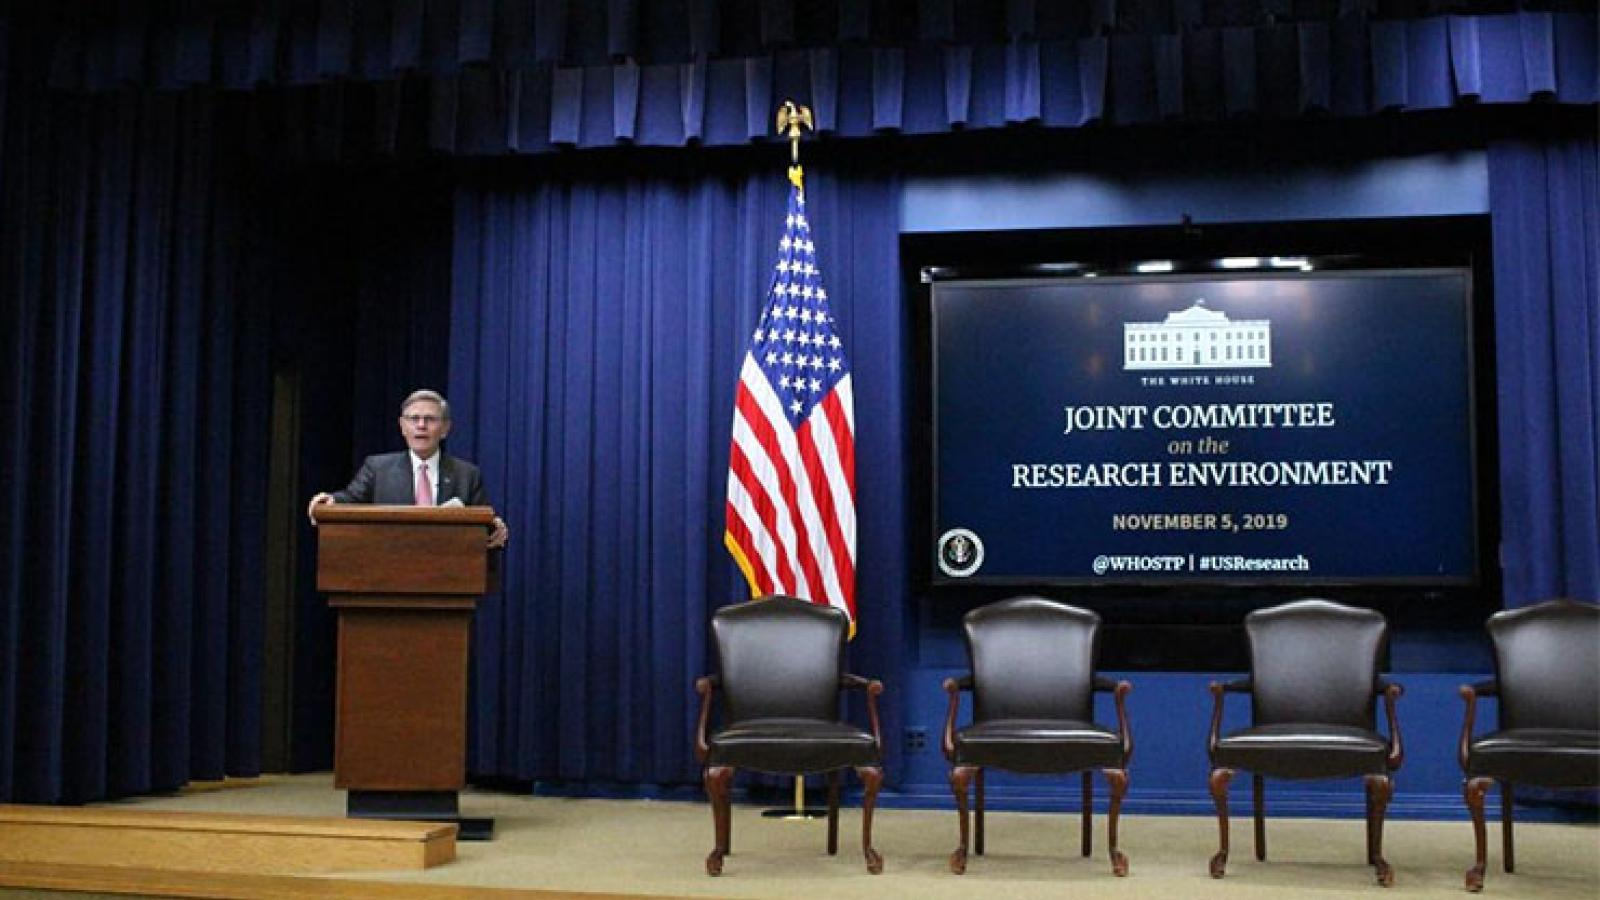 VC Terri Fiez participates in White House Summit of the Joint Committee on the Research Environment (JCORE)